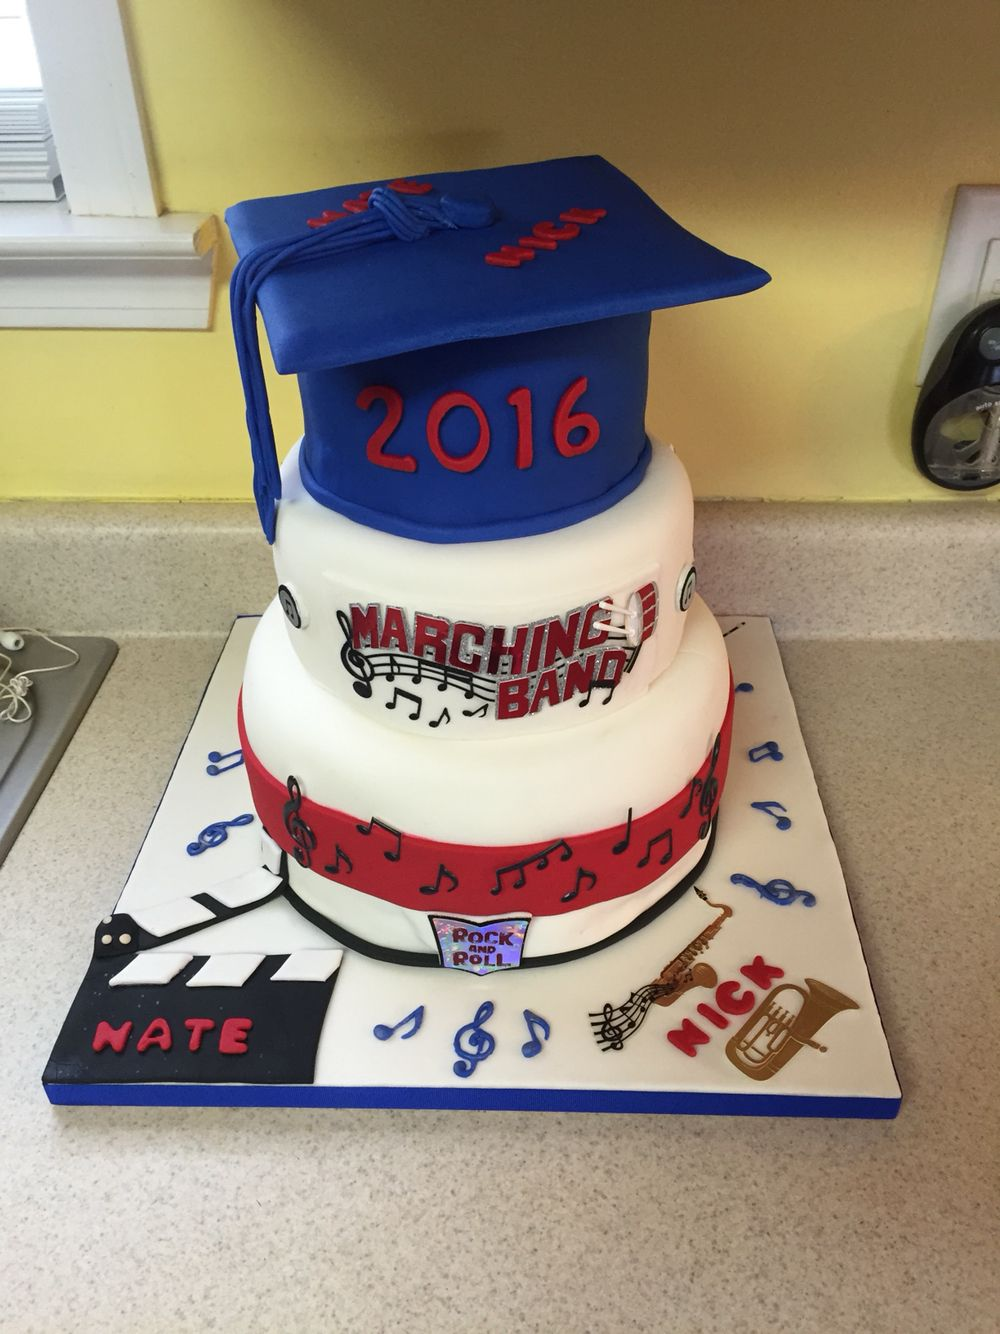 Marching Band Cake Graduation With Images Marching Band Cake